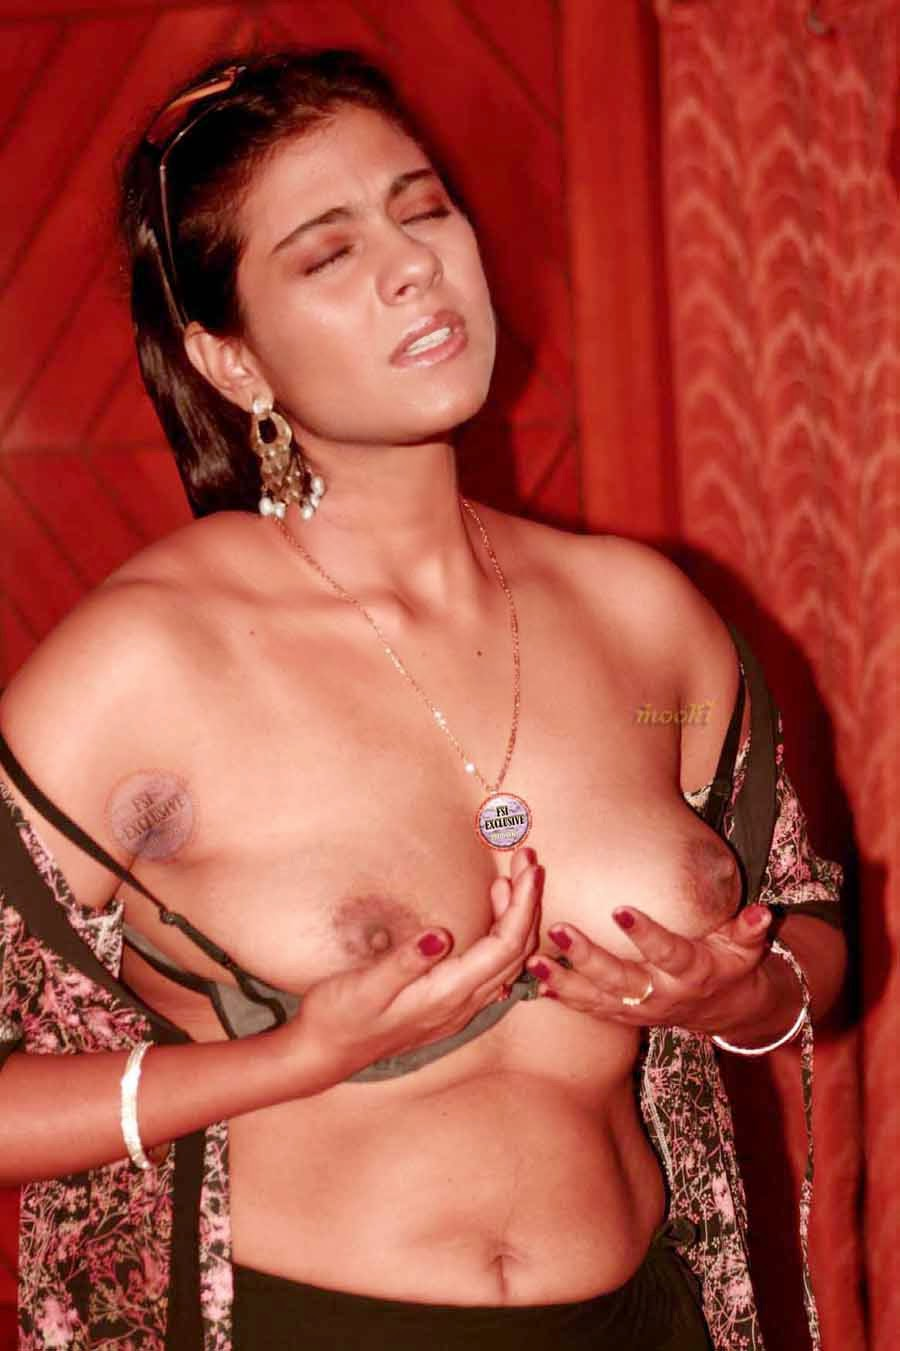 Hot Indian Actress Kajol Nude Pics Exposed-7944